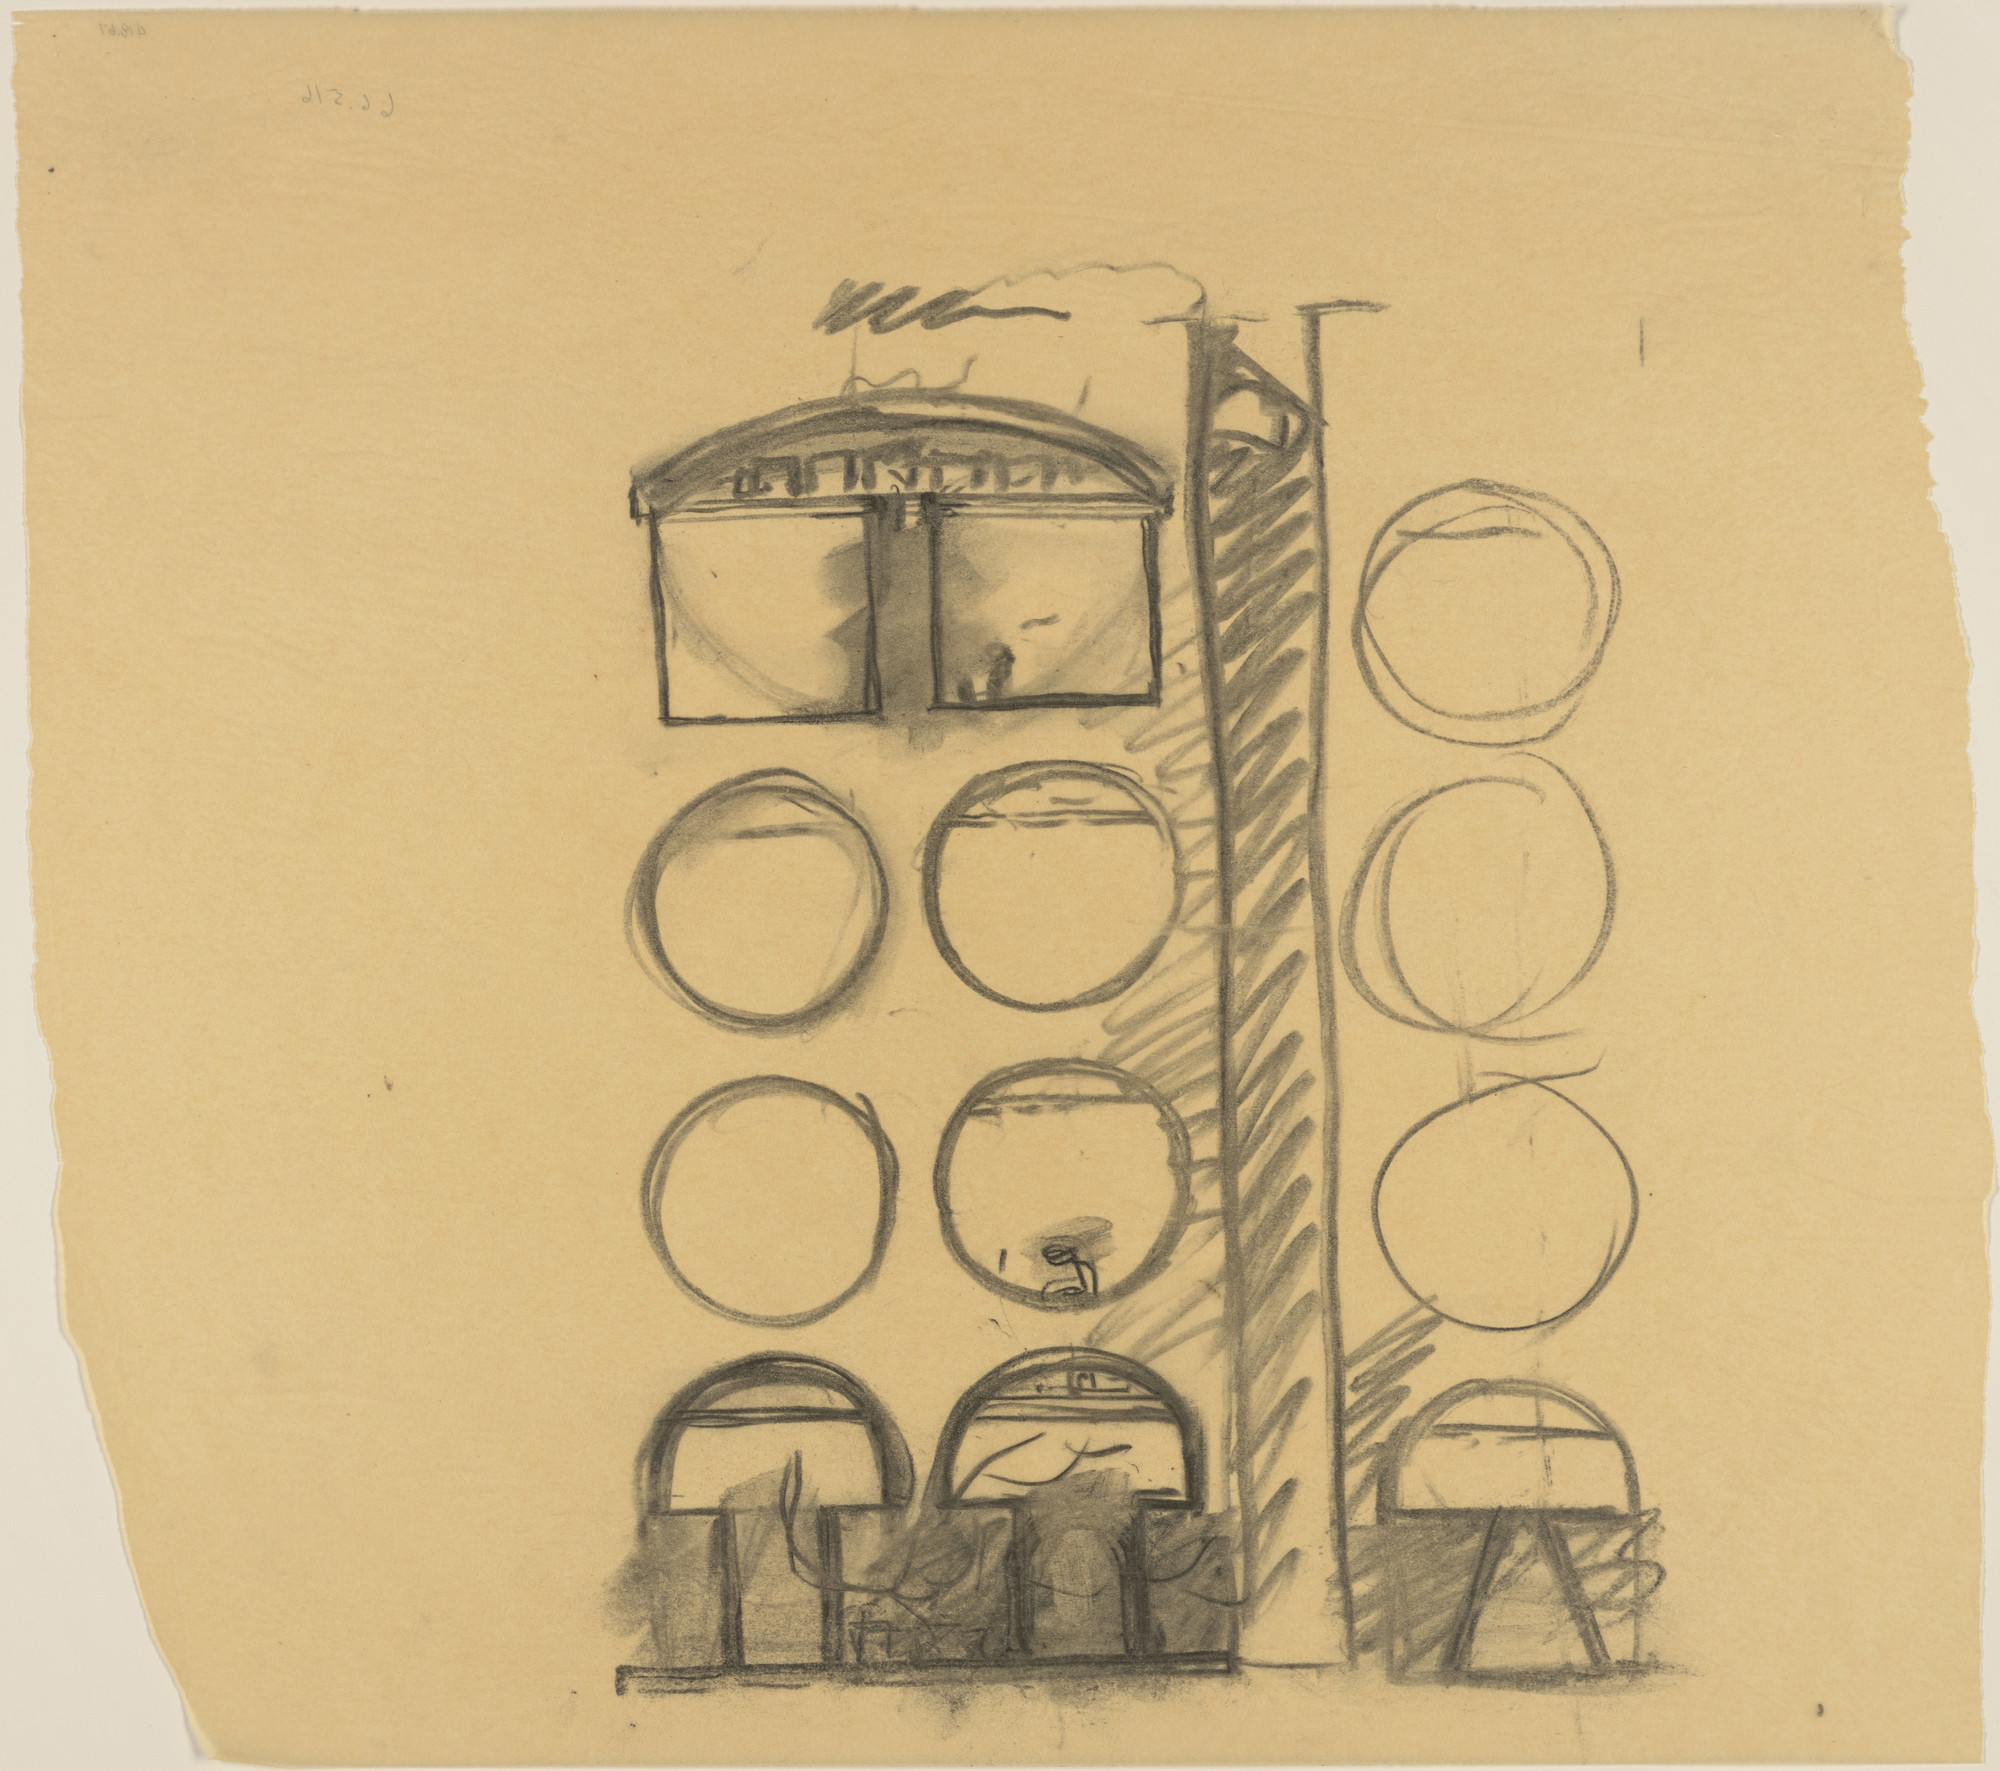 Louis I. Kahn. Sher-e-Bangla Nagar, Capital of Bangladesh, Dhaka, Bangladesh, Sketch of light elements for hostels. 1964